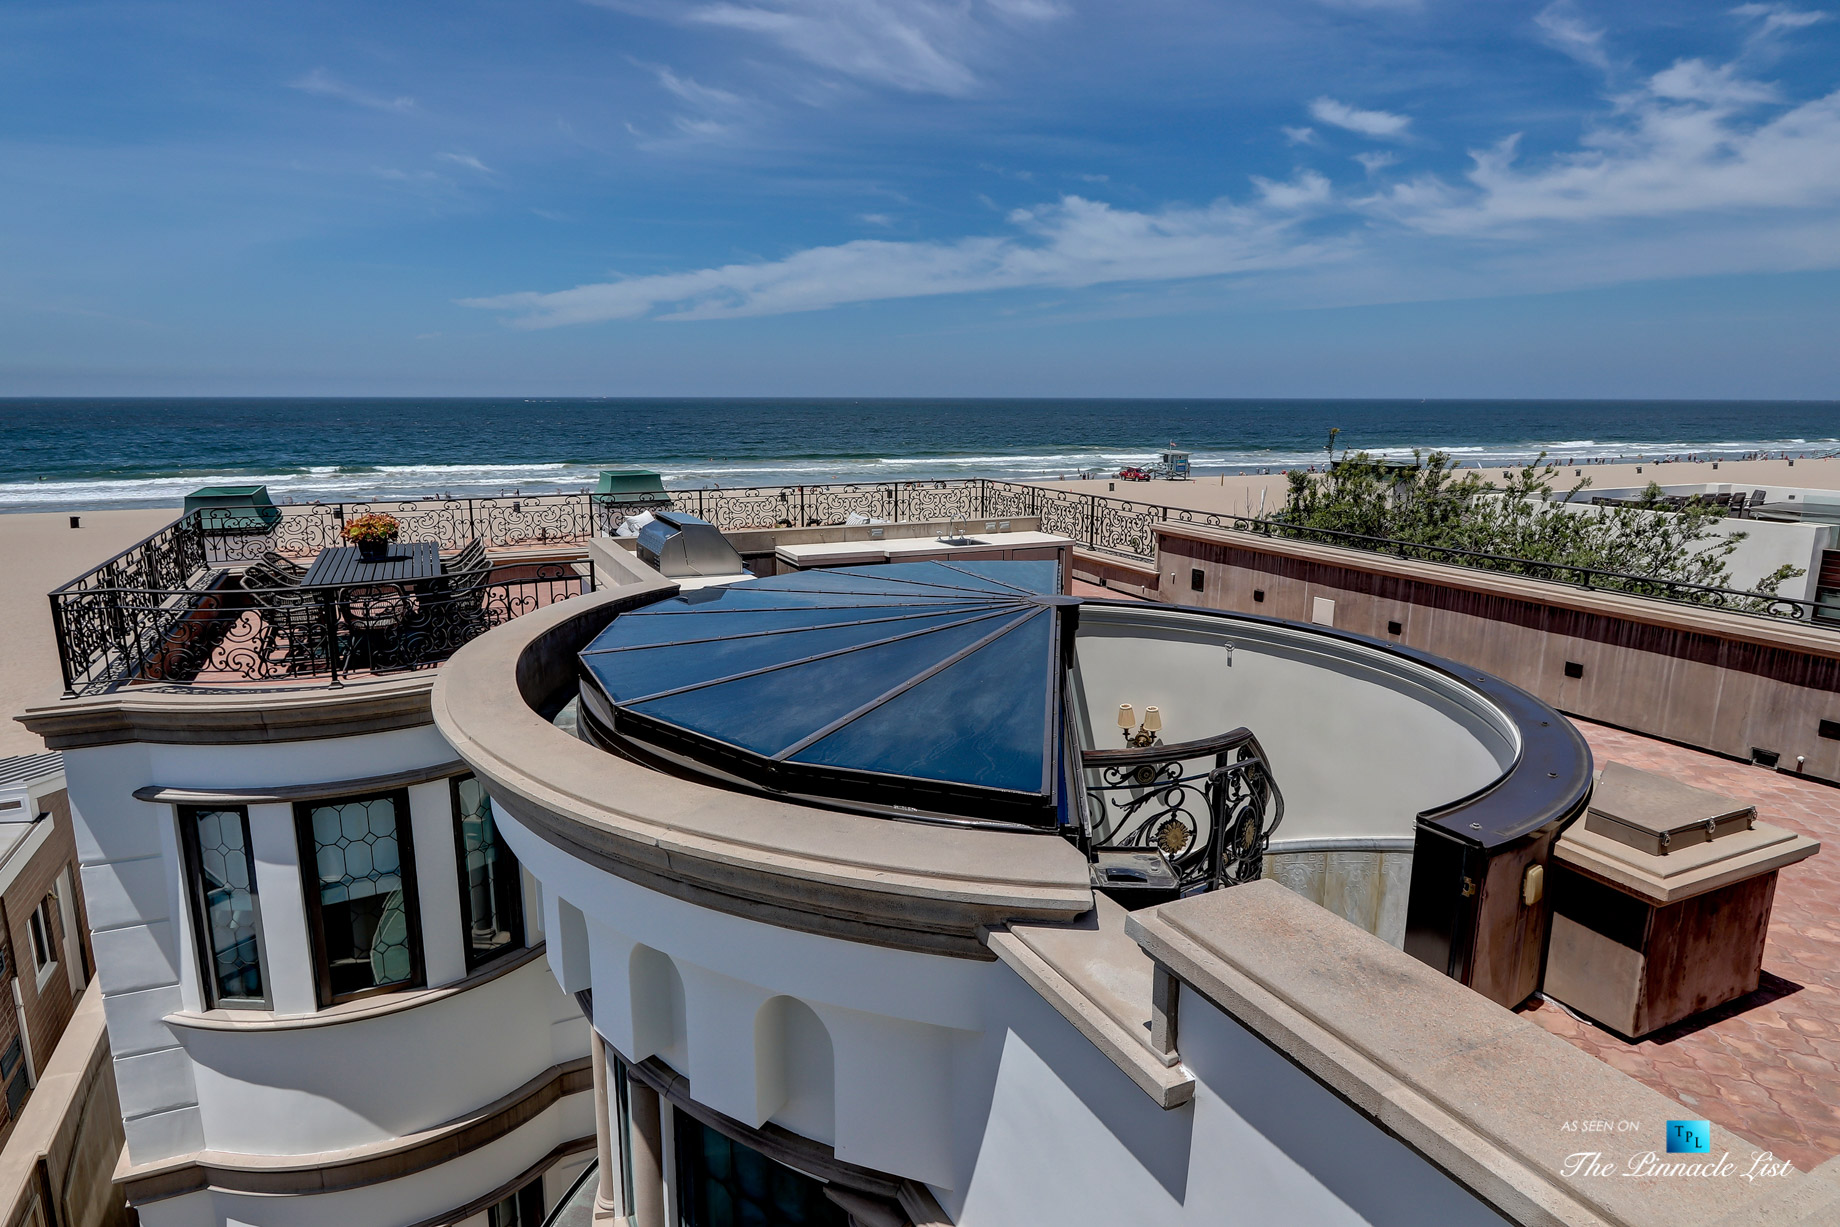 Oceanfront Luxury Living Exemplified - 2806 The Strand, Hermosa Beach, CA, USA - Roof Deck Stairs Opening